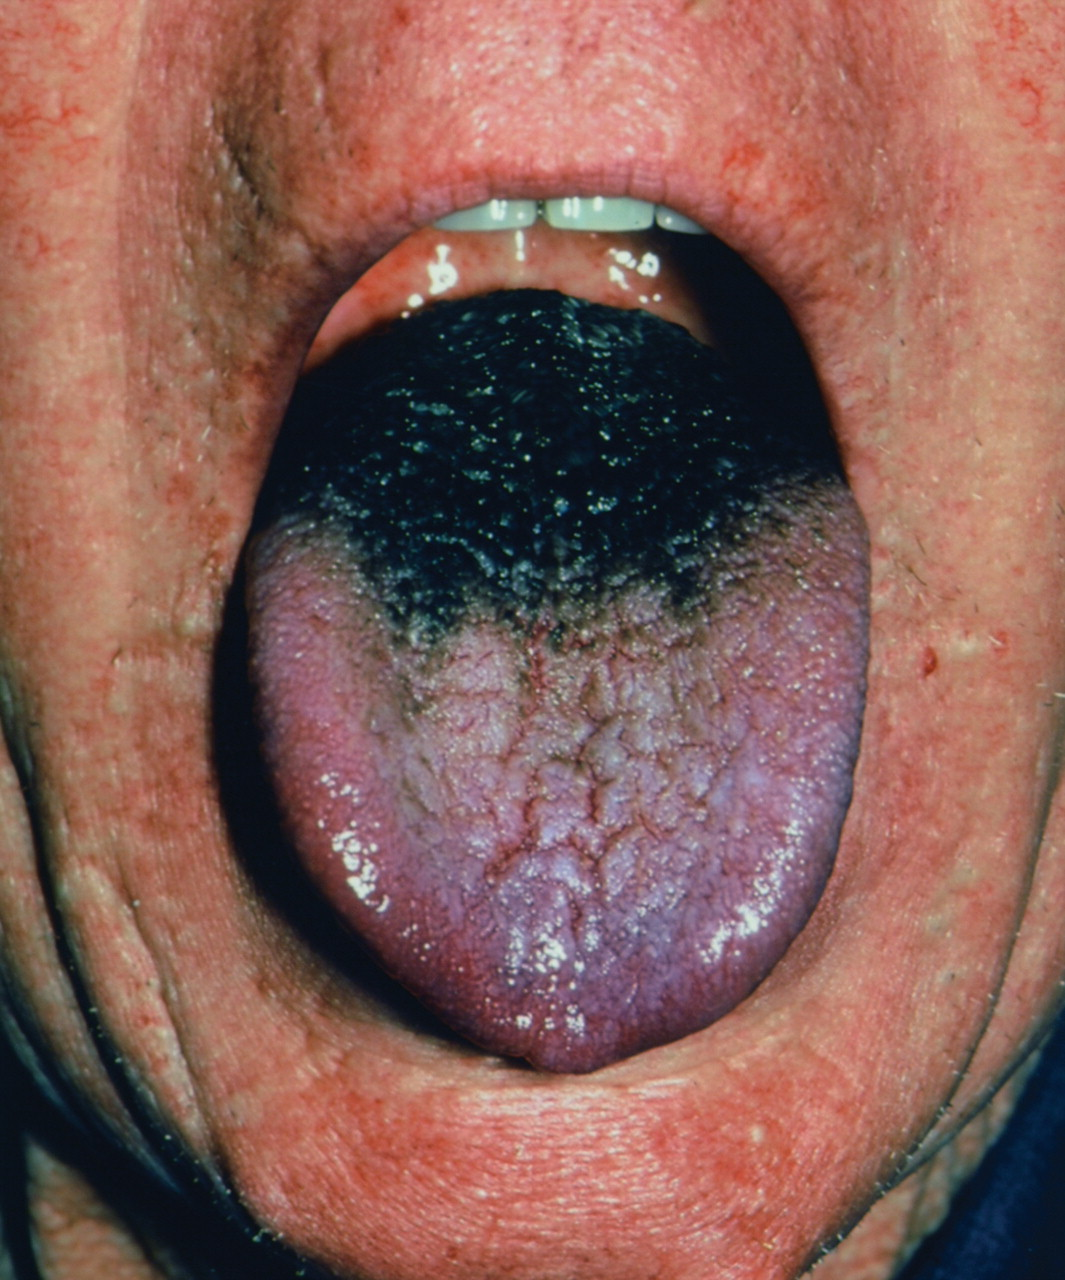 Black hairy tongue: What is your call? | CMAJ